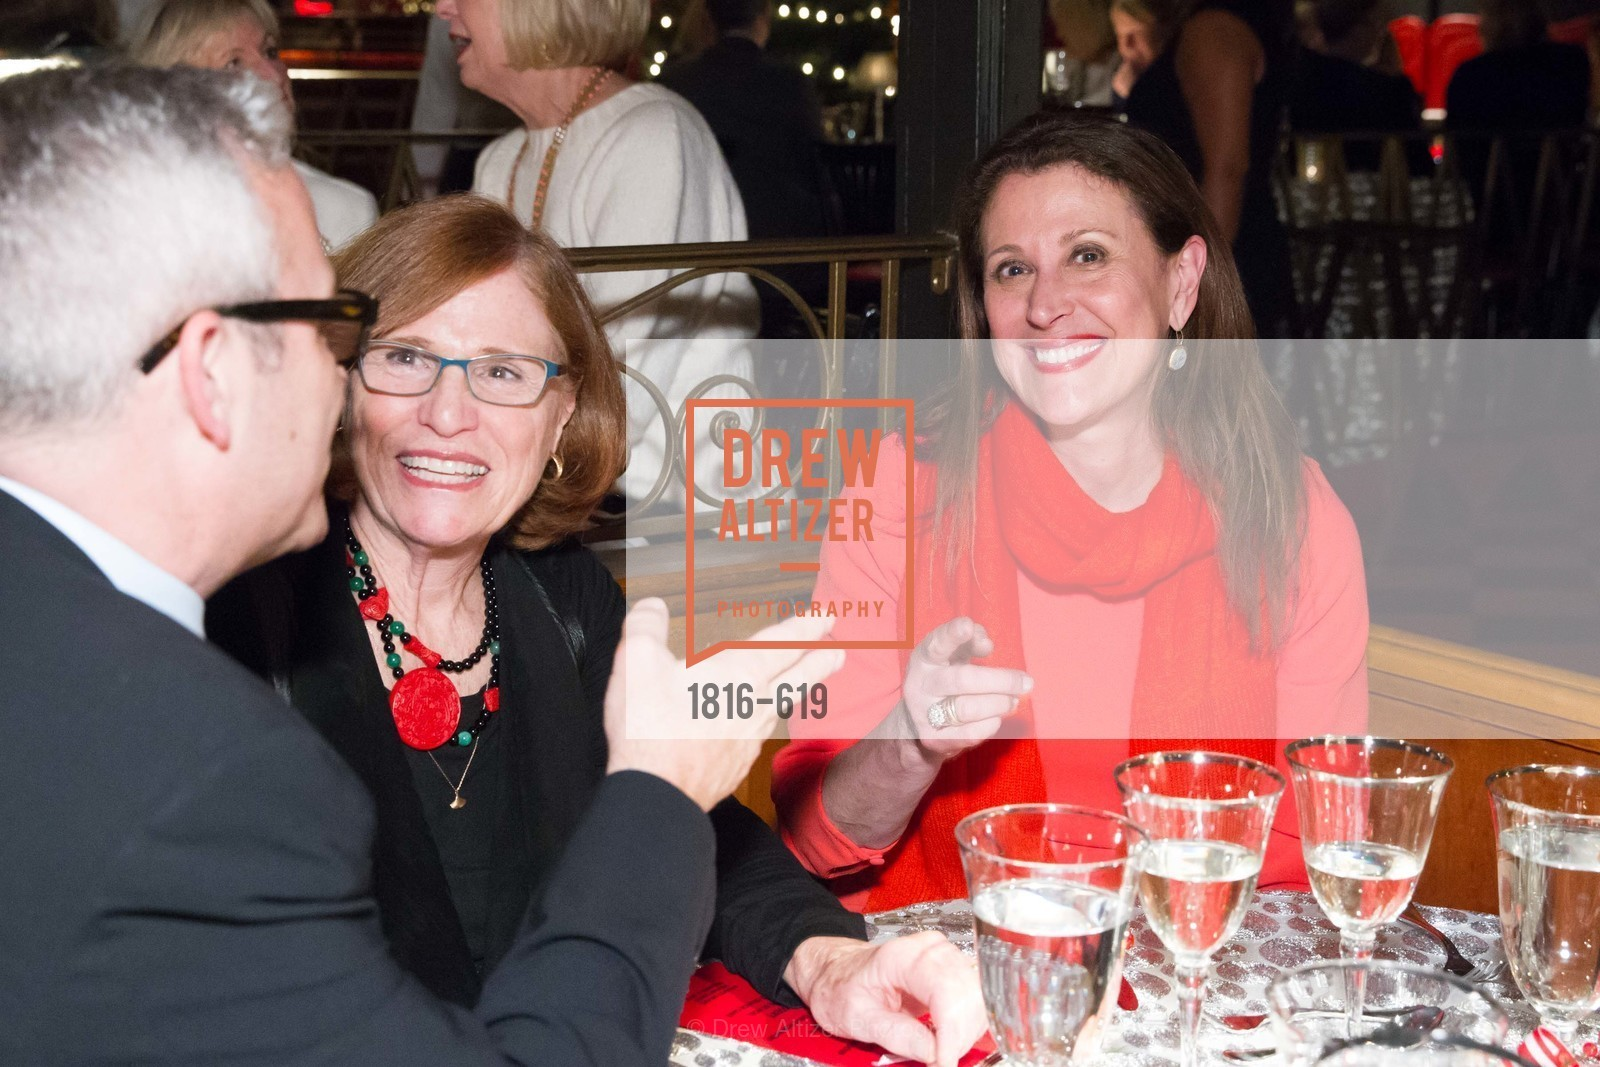 Extras, Shansby/Matarasso Holiday Lunch, December 4th, 2015, Photo,Drew Altizer, Drew Altizer Photography, full-service event agency, private events, San Francisco photographer, photographer California